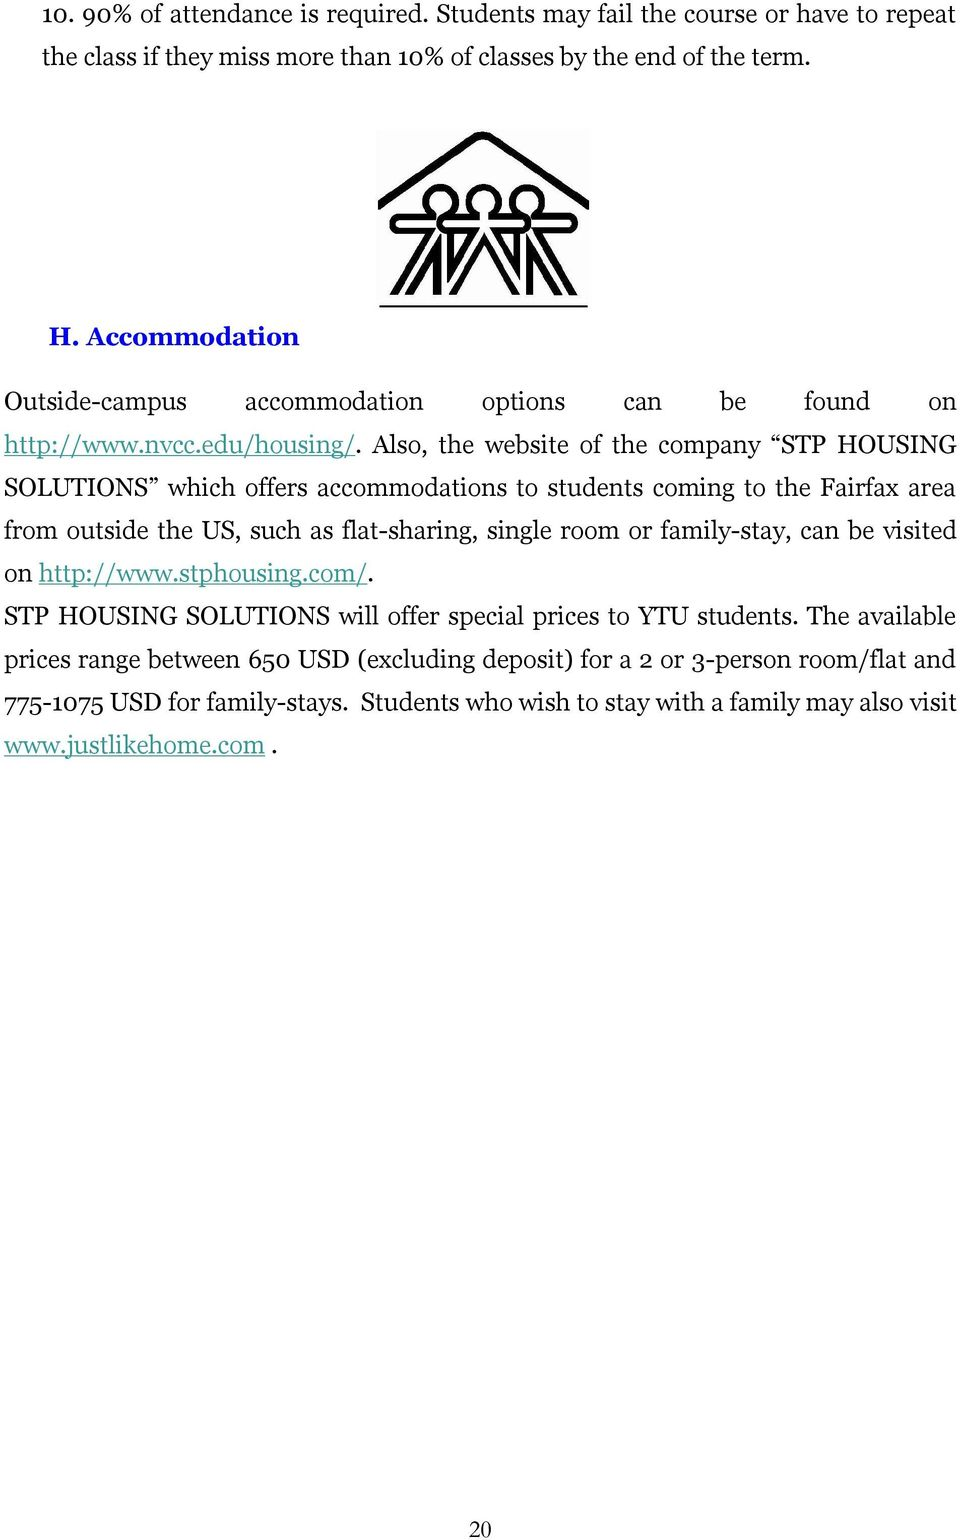 Also, the website of the company STP HOUSING SOLUTIONS which offers accommodations to students coming to the Fairfax area from outside the US, such as flat-sharing, single room or